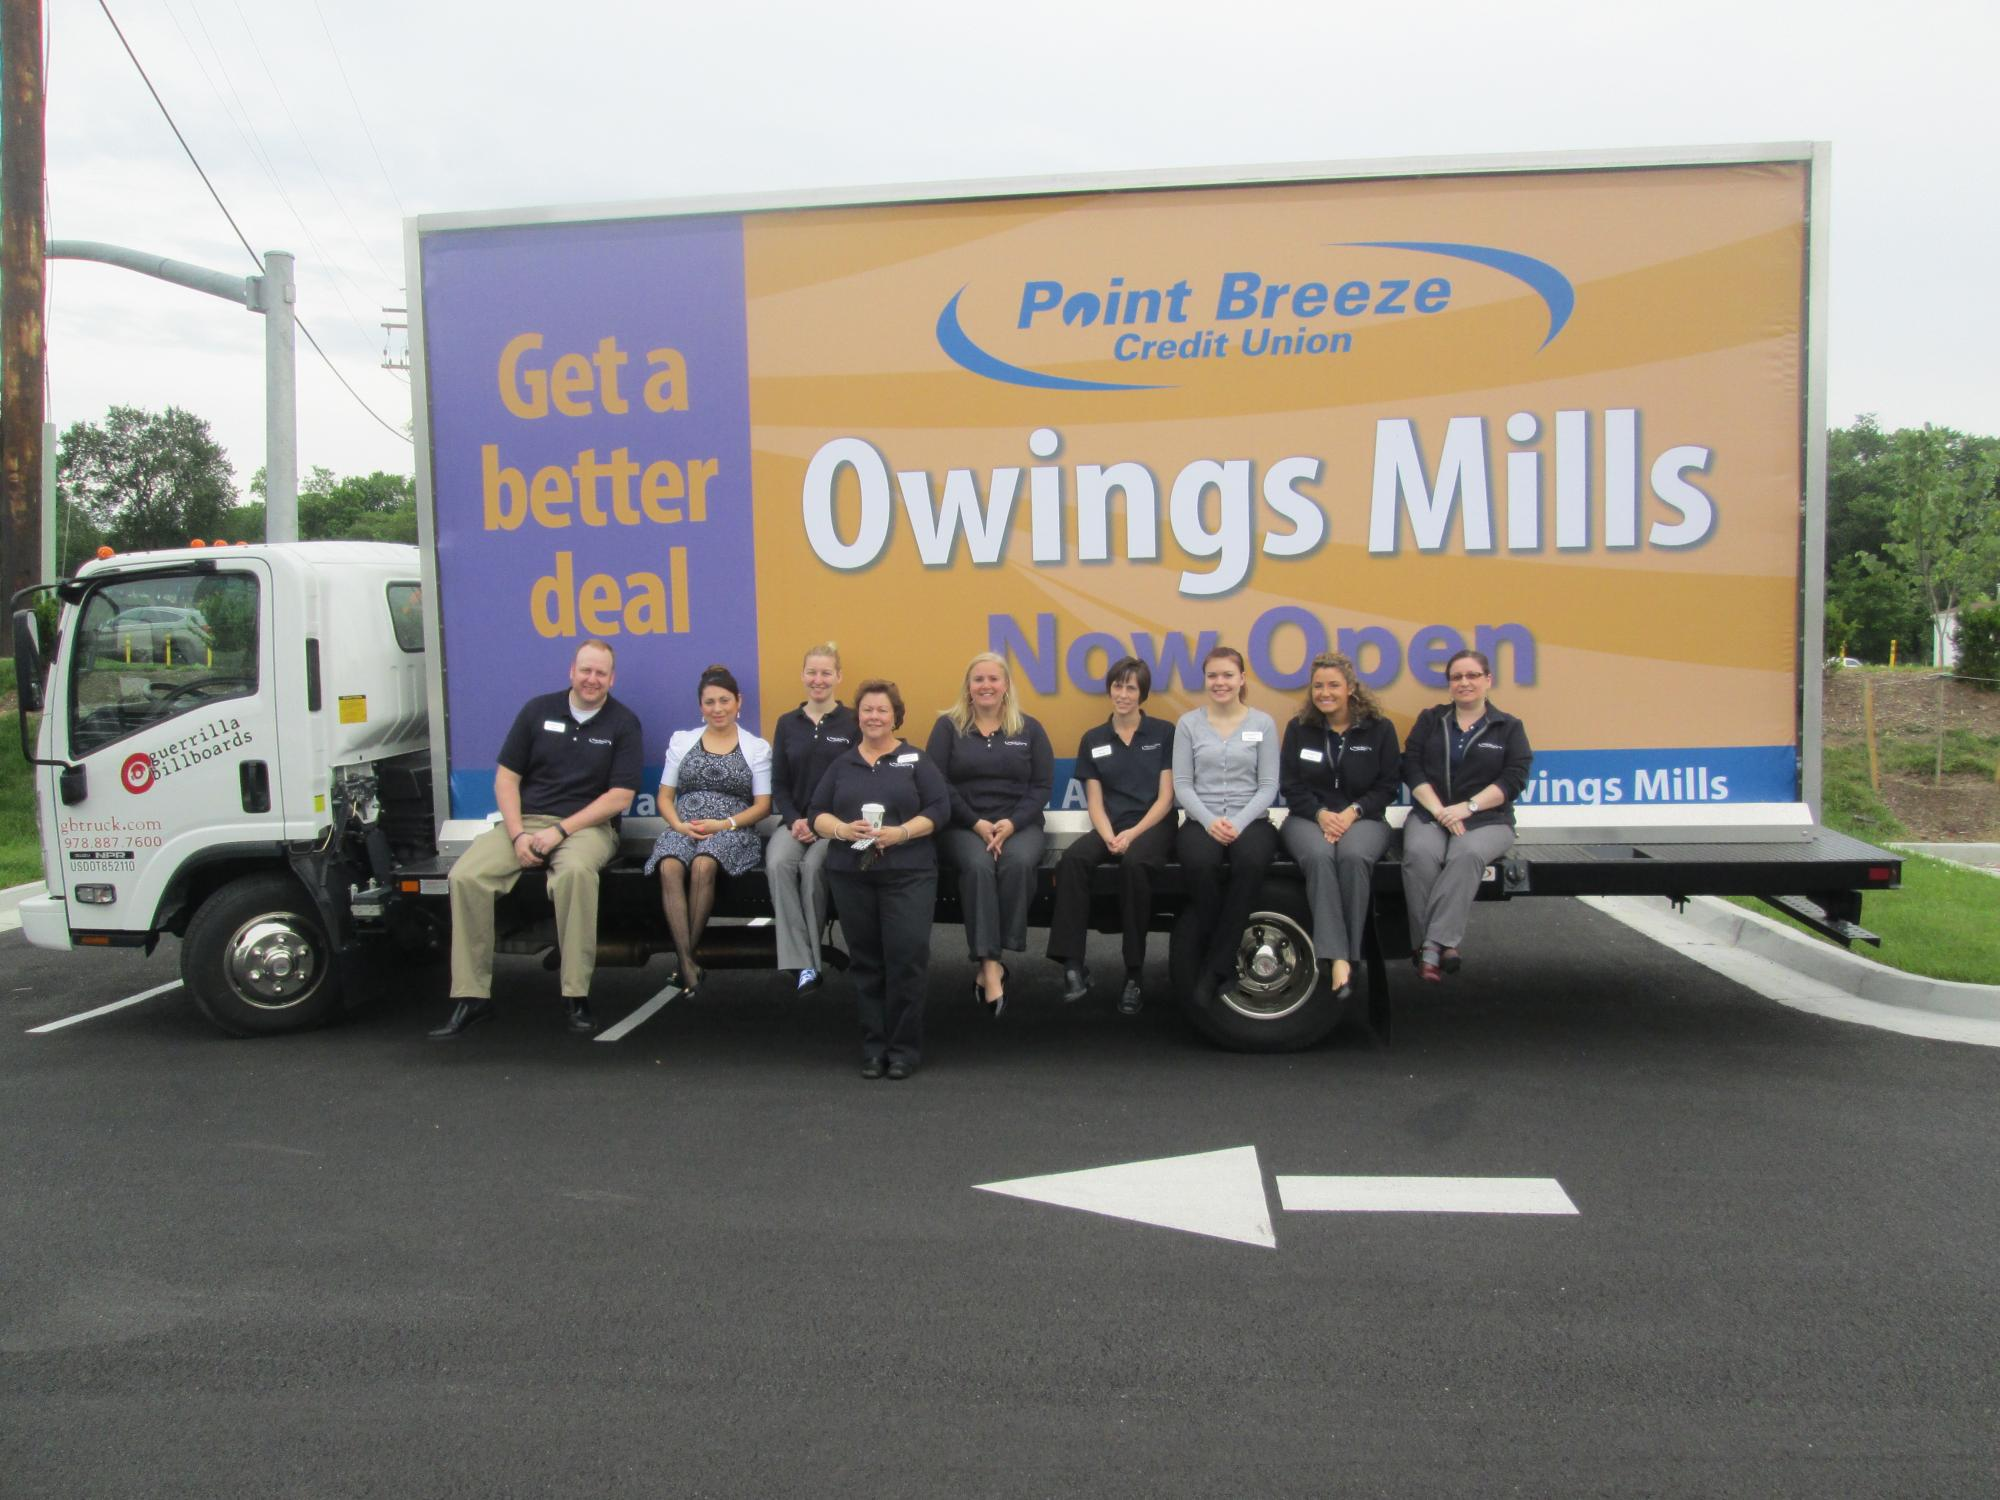 Point Breeze Credit Union - Owings Mills Grand Opening